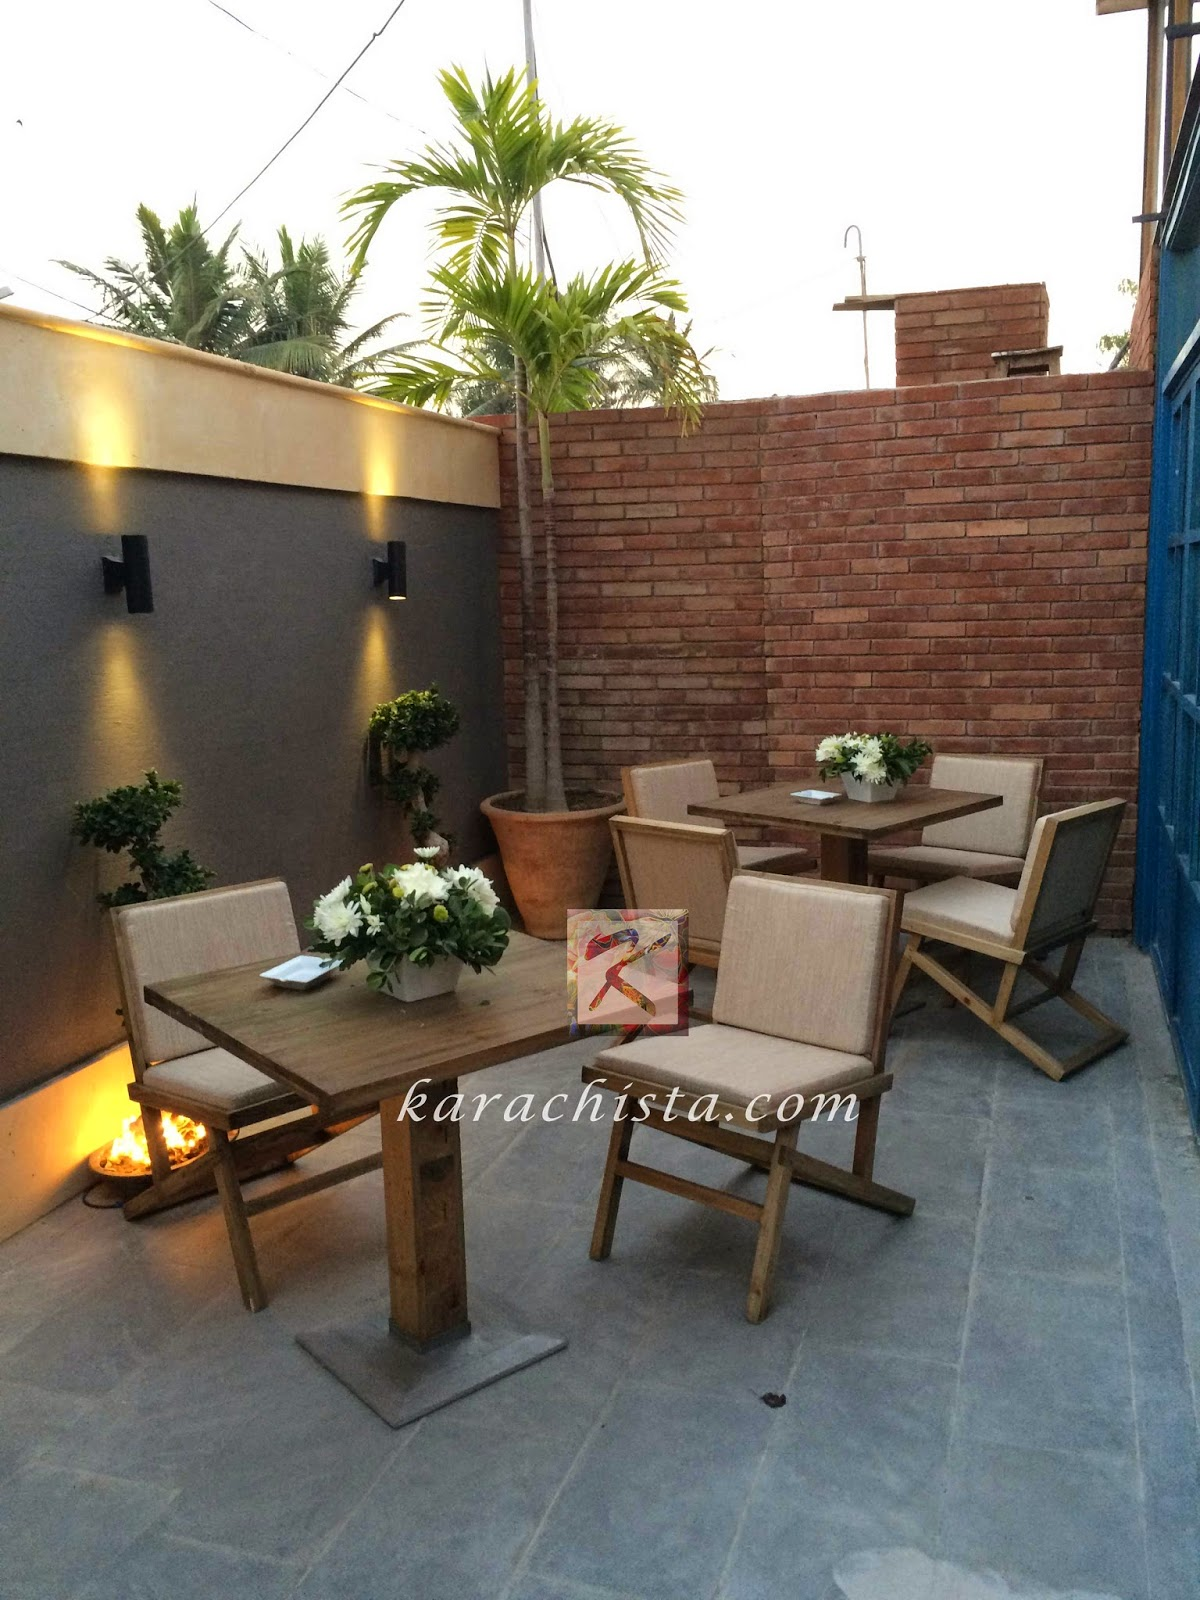 Mews – Karachi s newest upscale cafe reviewed Karachista